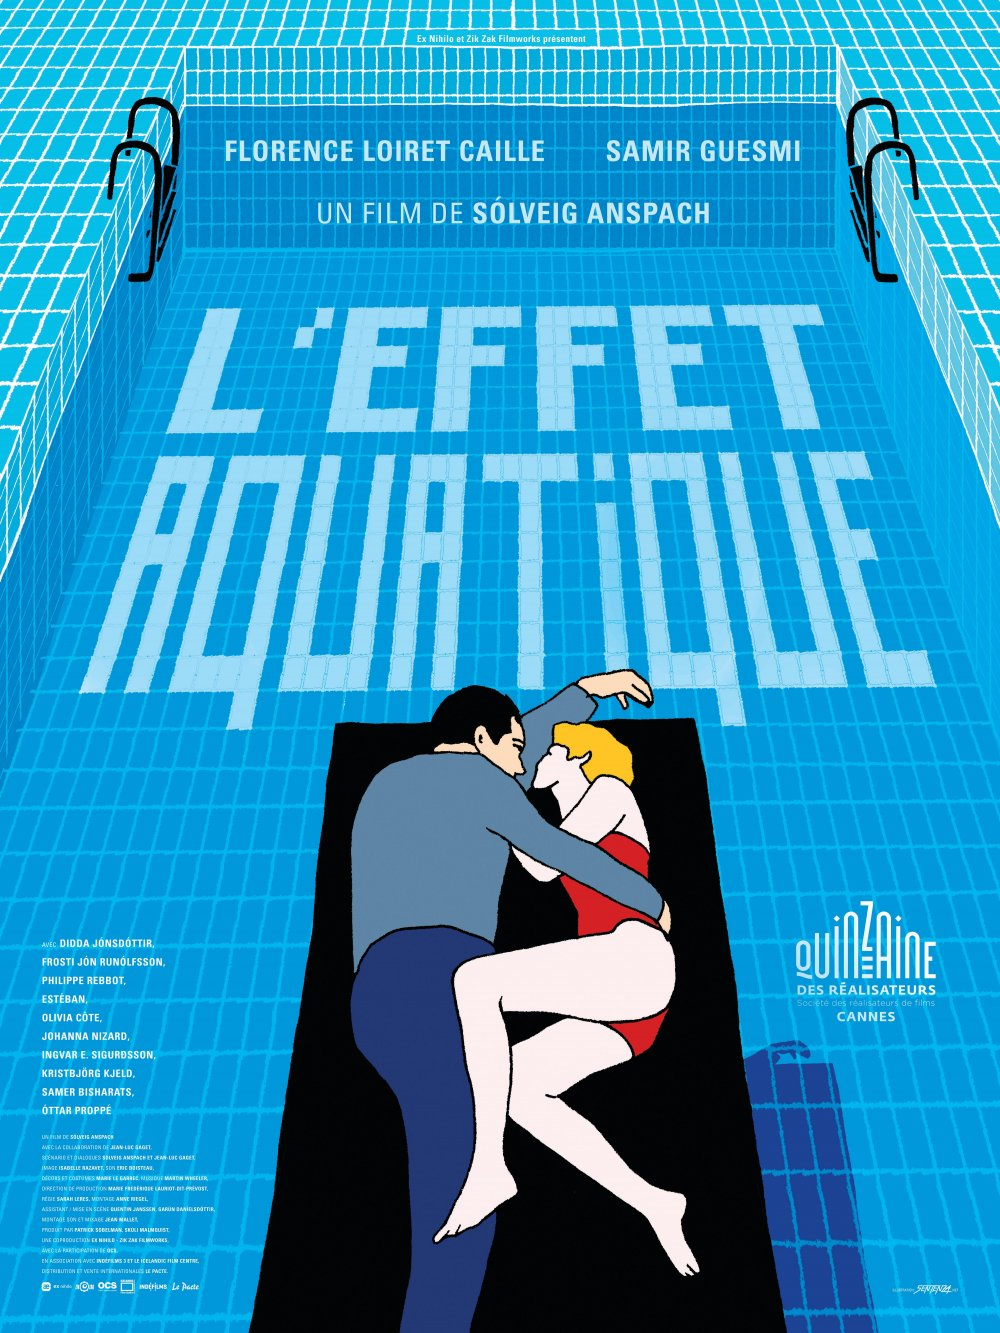 The festival poster for Solveig Anspach's The Aquatic Effect (2016)